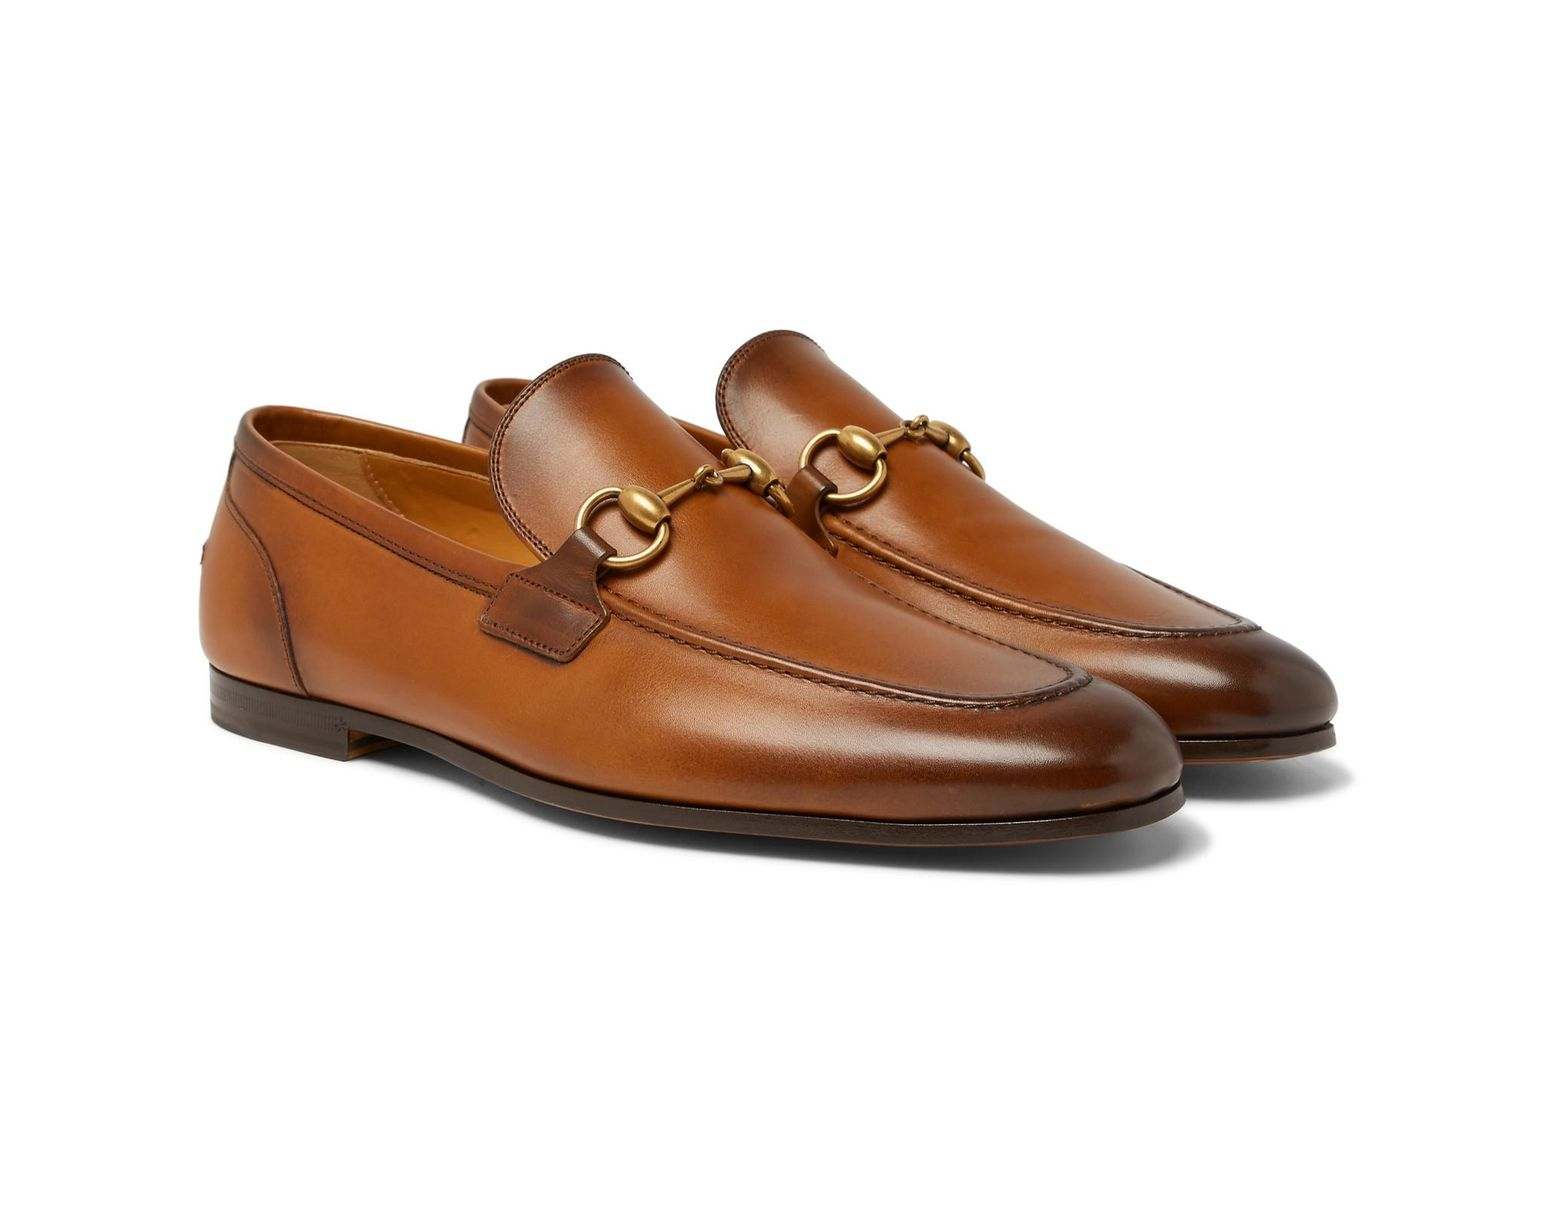 db8a26a44 Gucci Jordaan Horsebit Burnished-leather Loafers in Brown for Men - Lyst